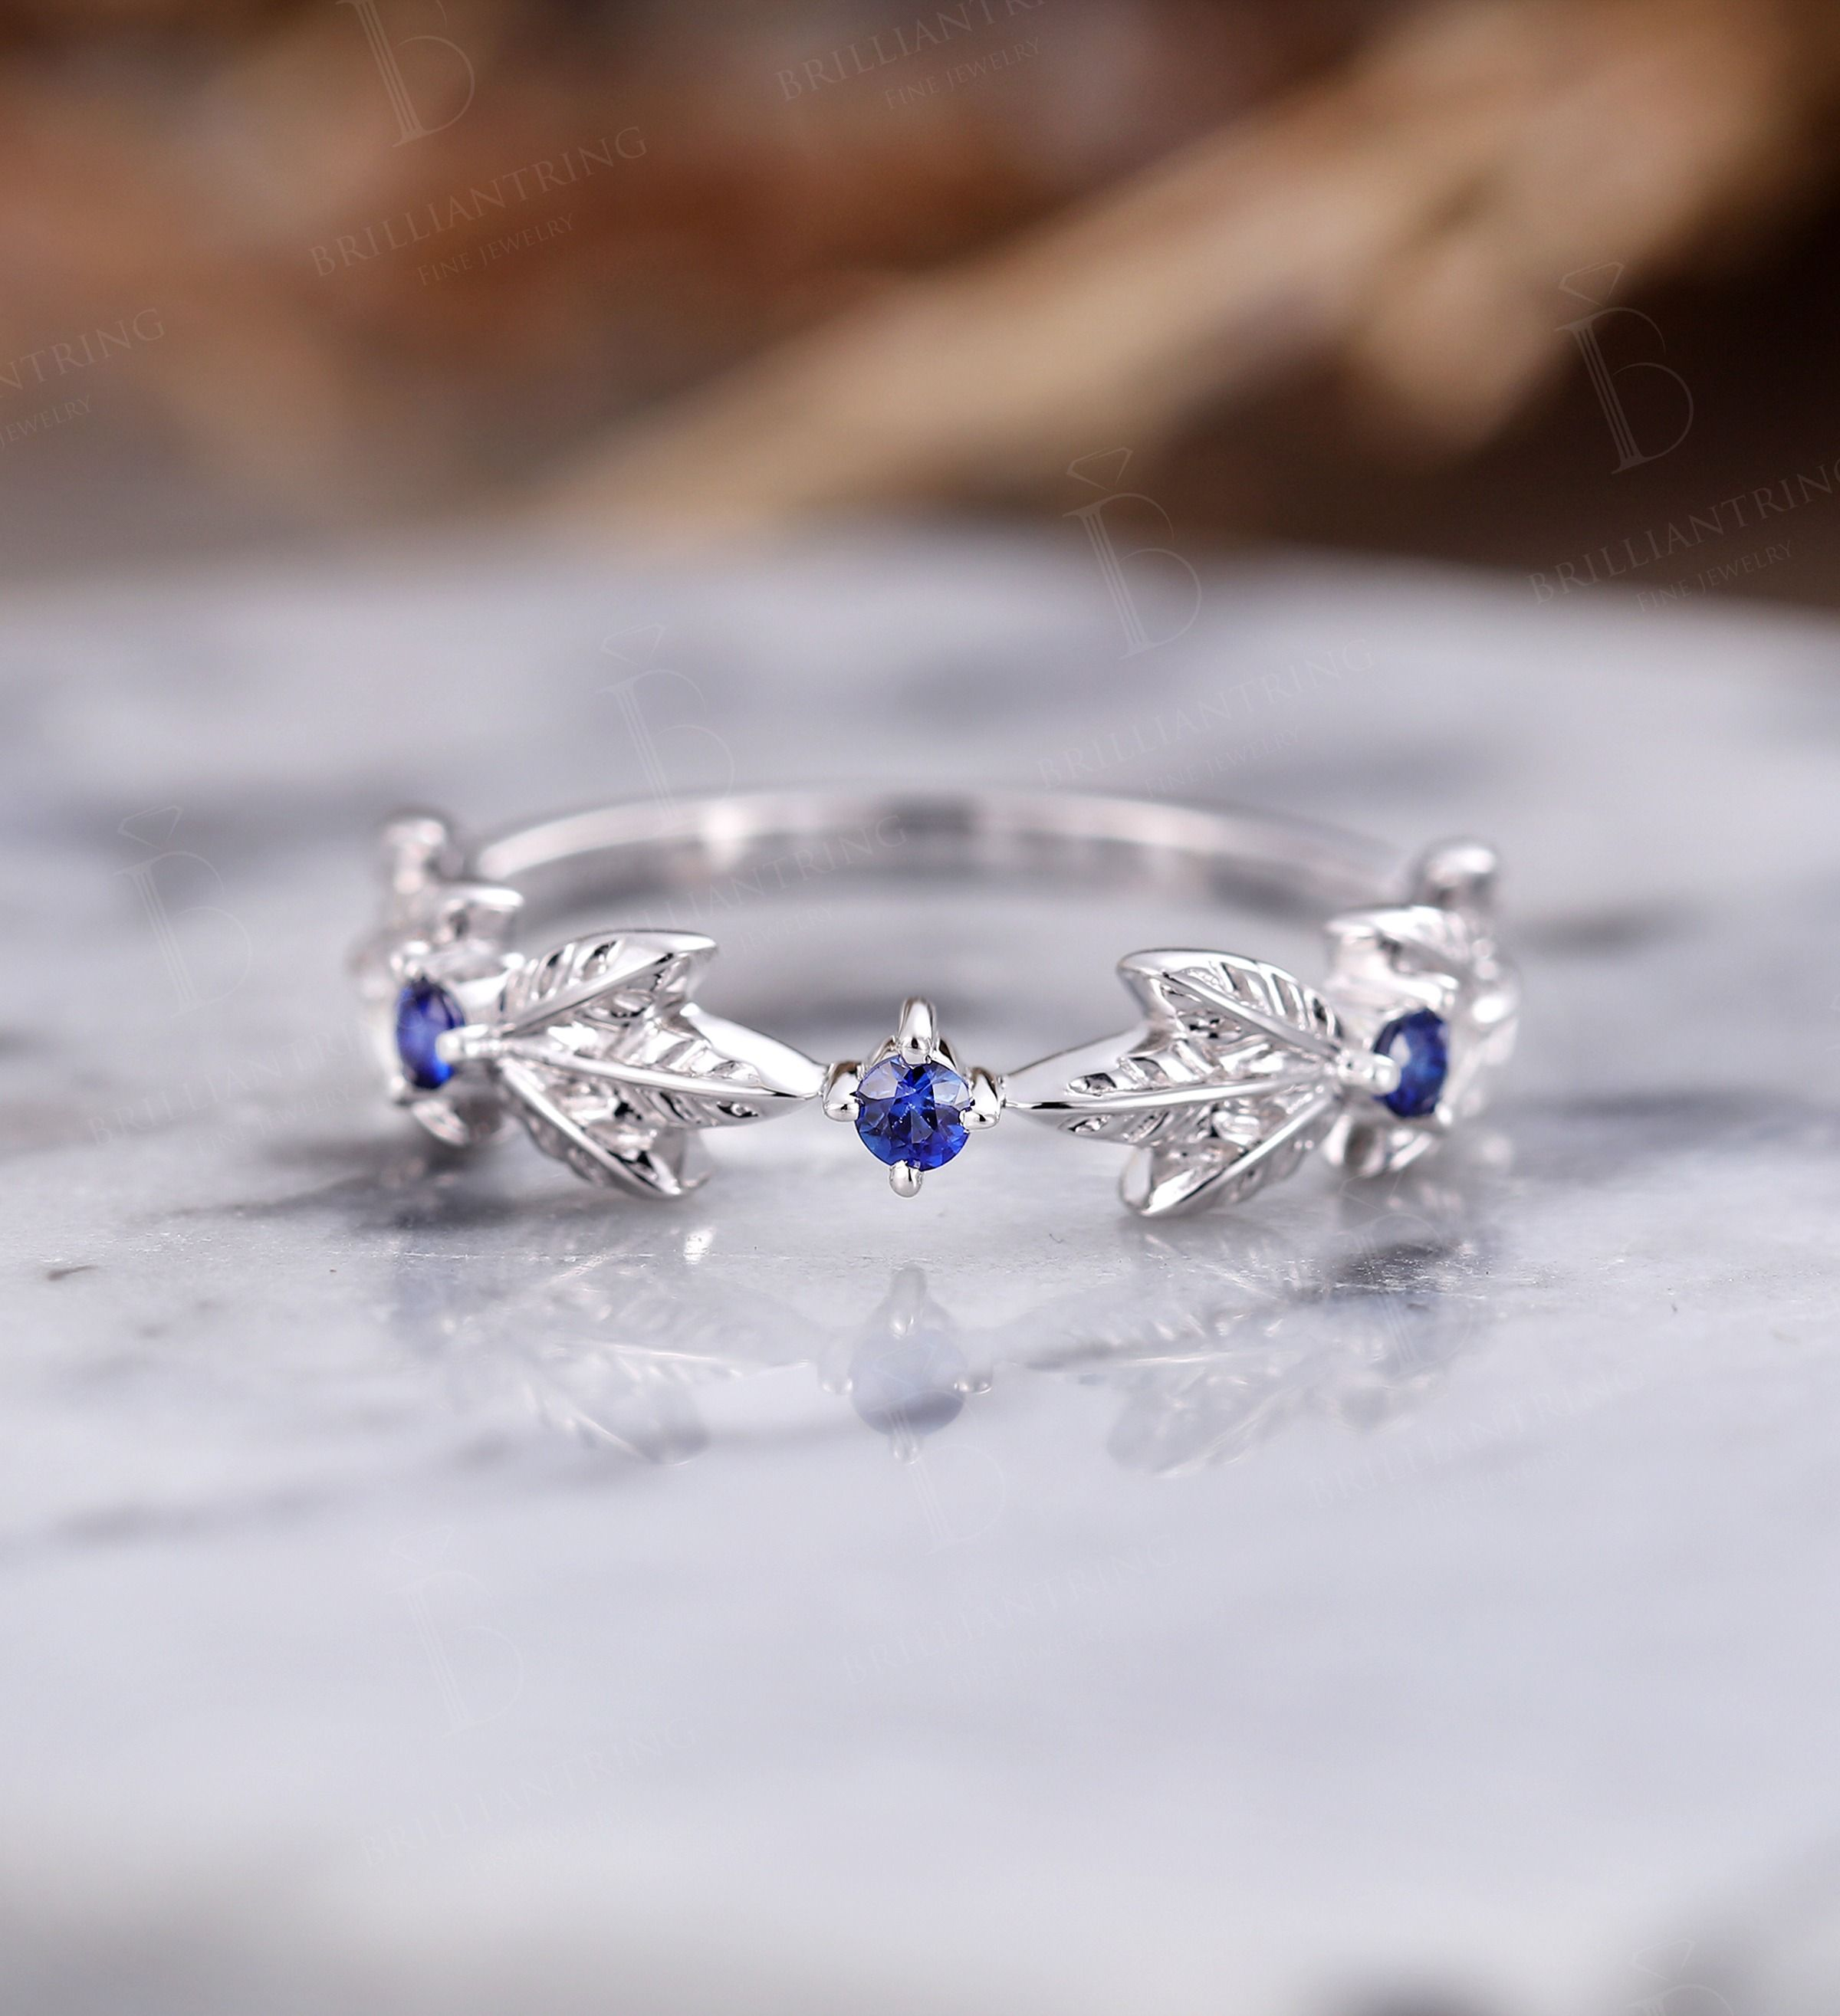 Pin by BrilliantRing on Rings Antique wedding rings